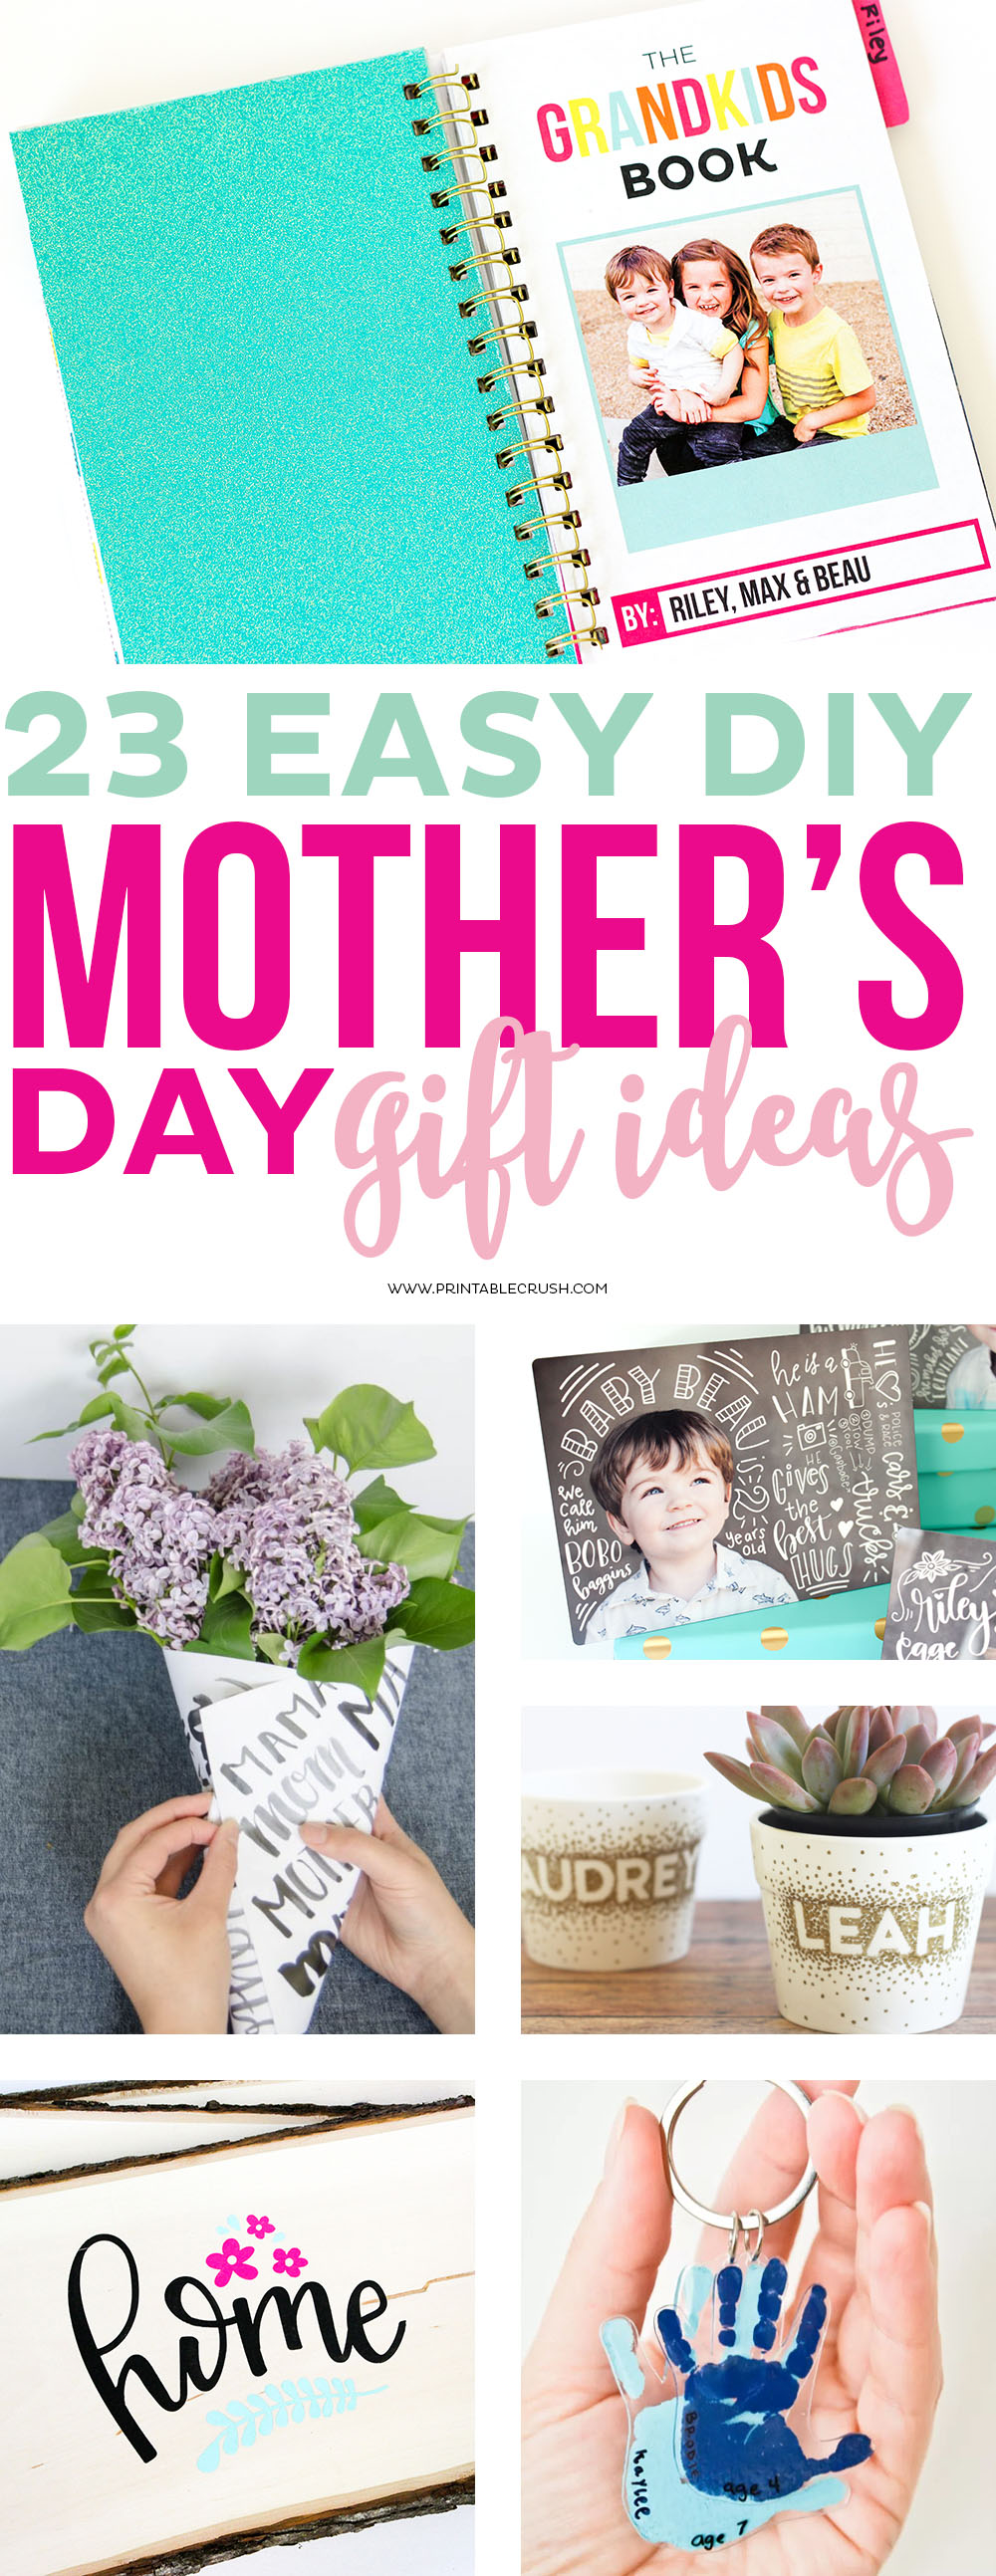 Mother's Day is coming up quick and I have put together a fabulous list of 23 EASY DIY MOTHER'S DAY GIFT IDEAS! These are perfect for mom and grandma!